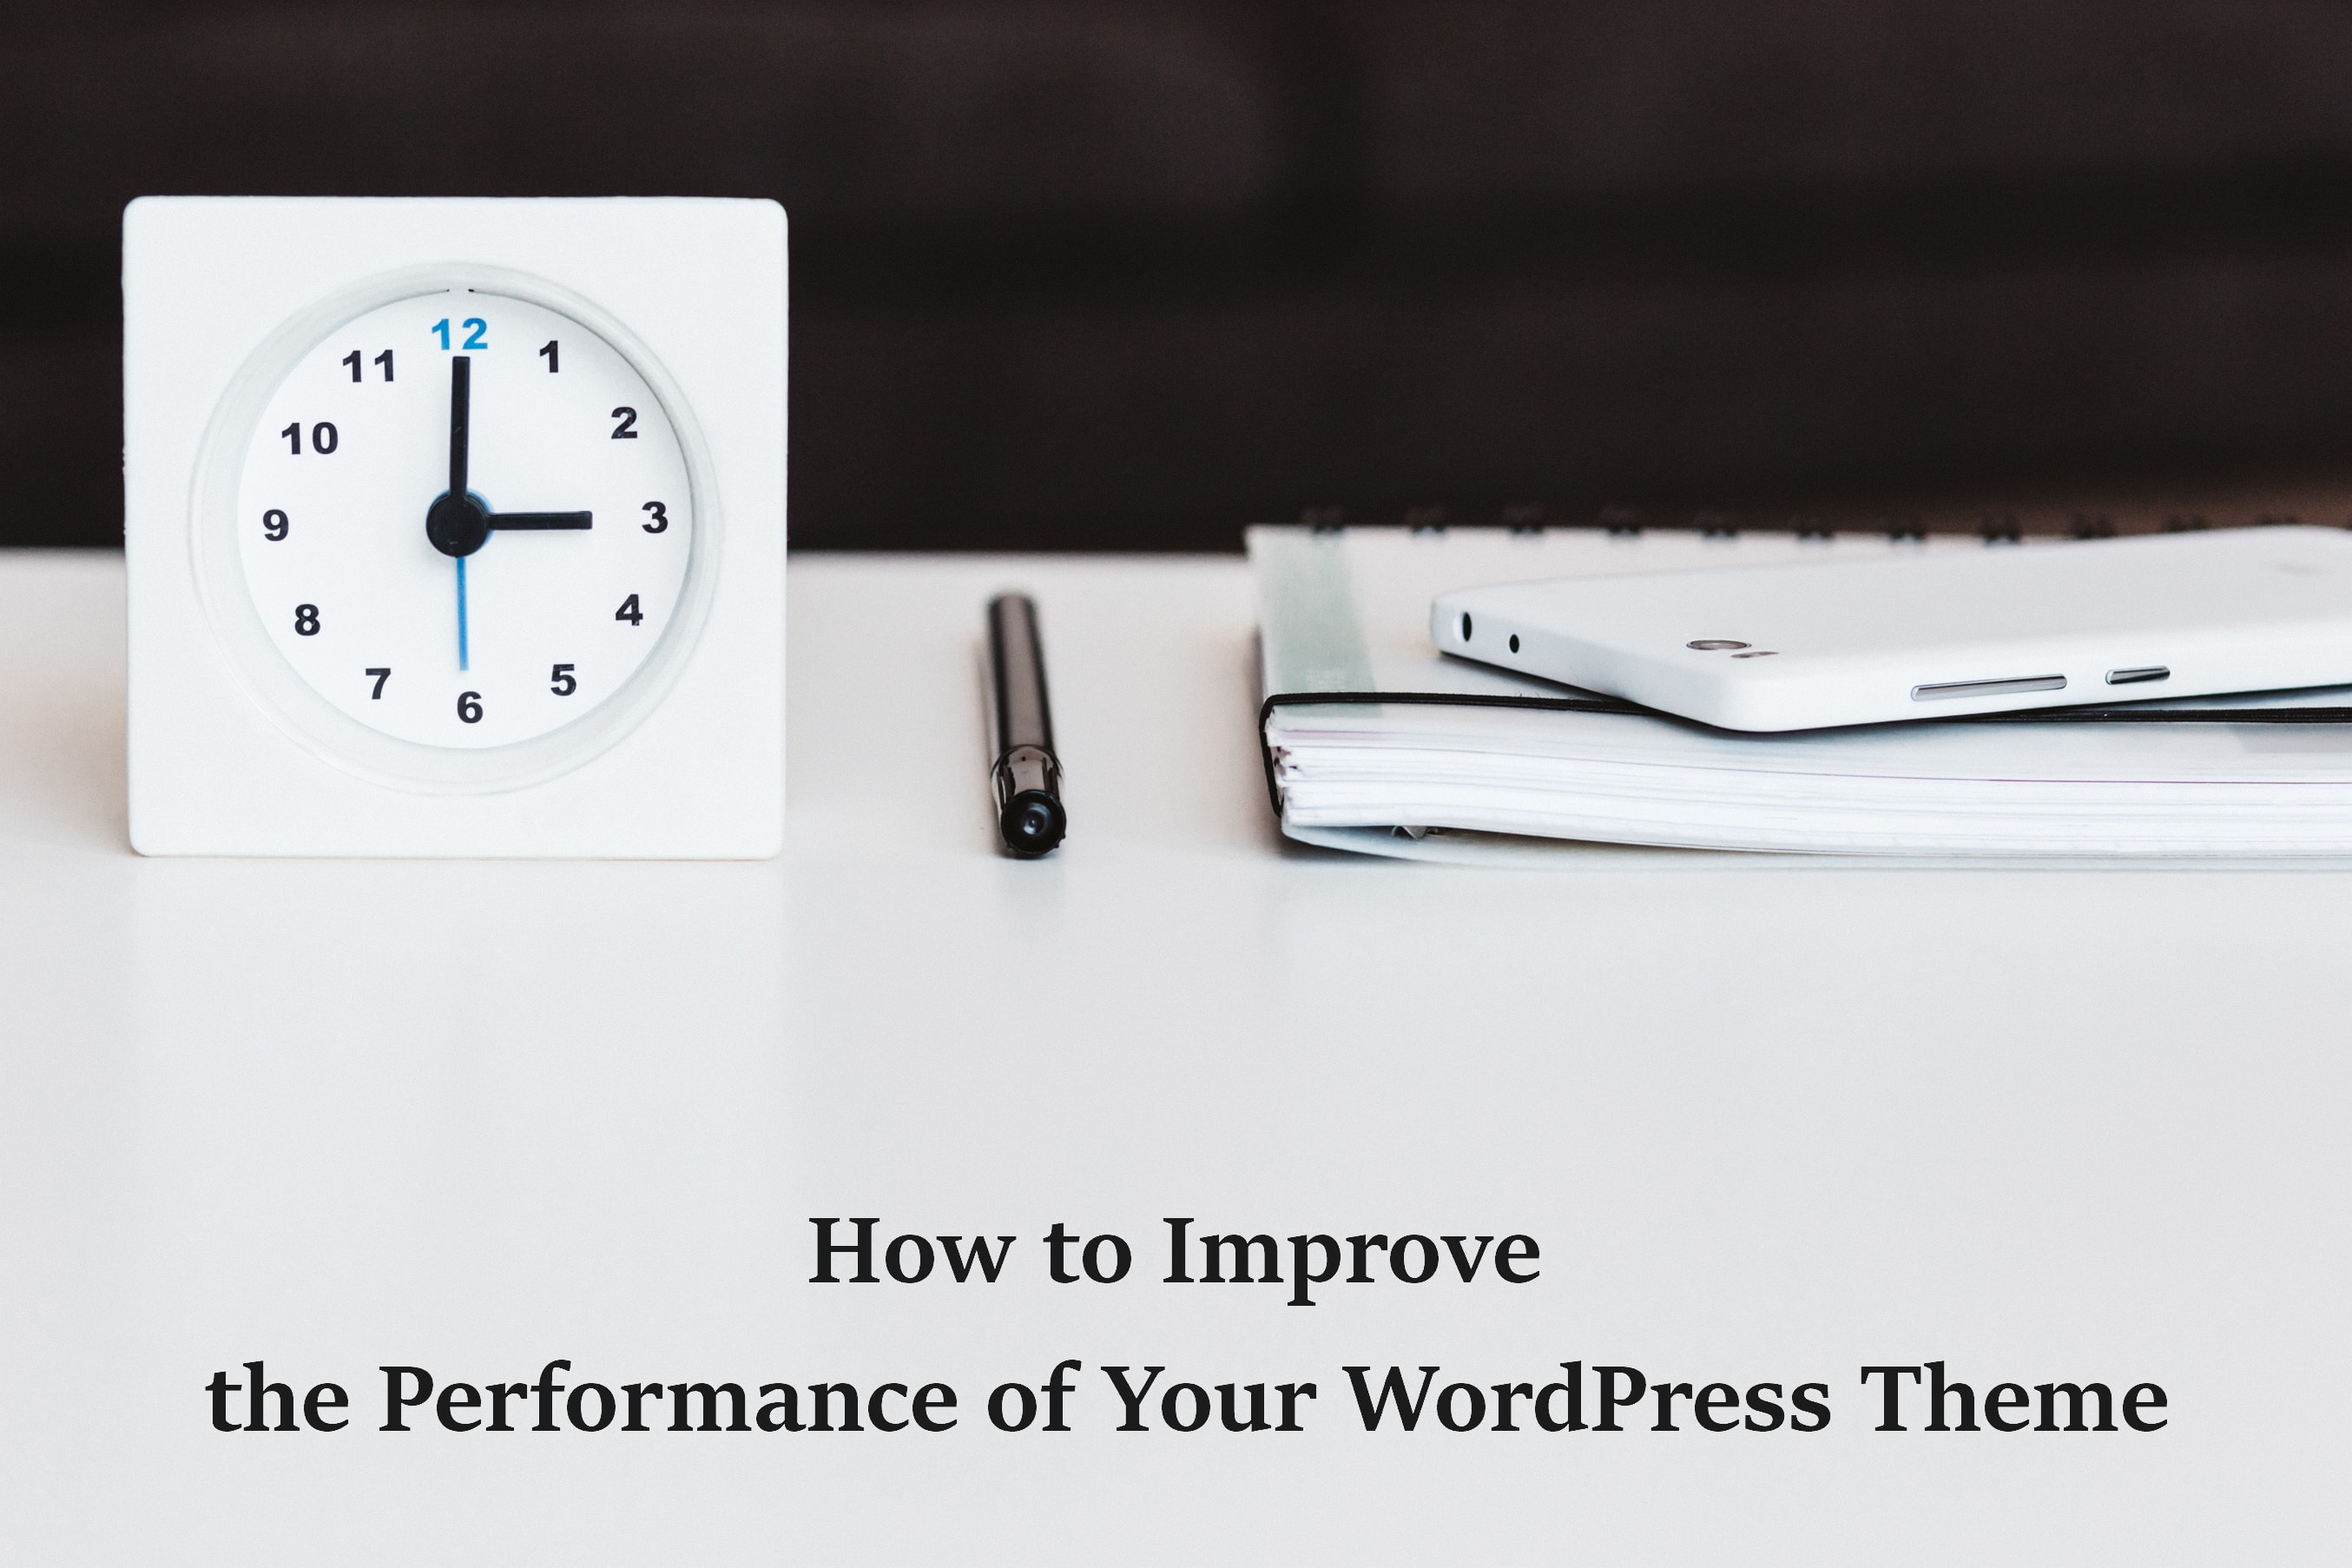 Increace WordPress Theme Performance